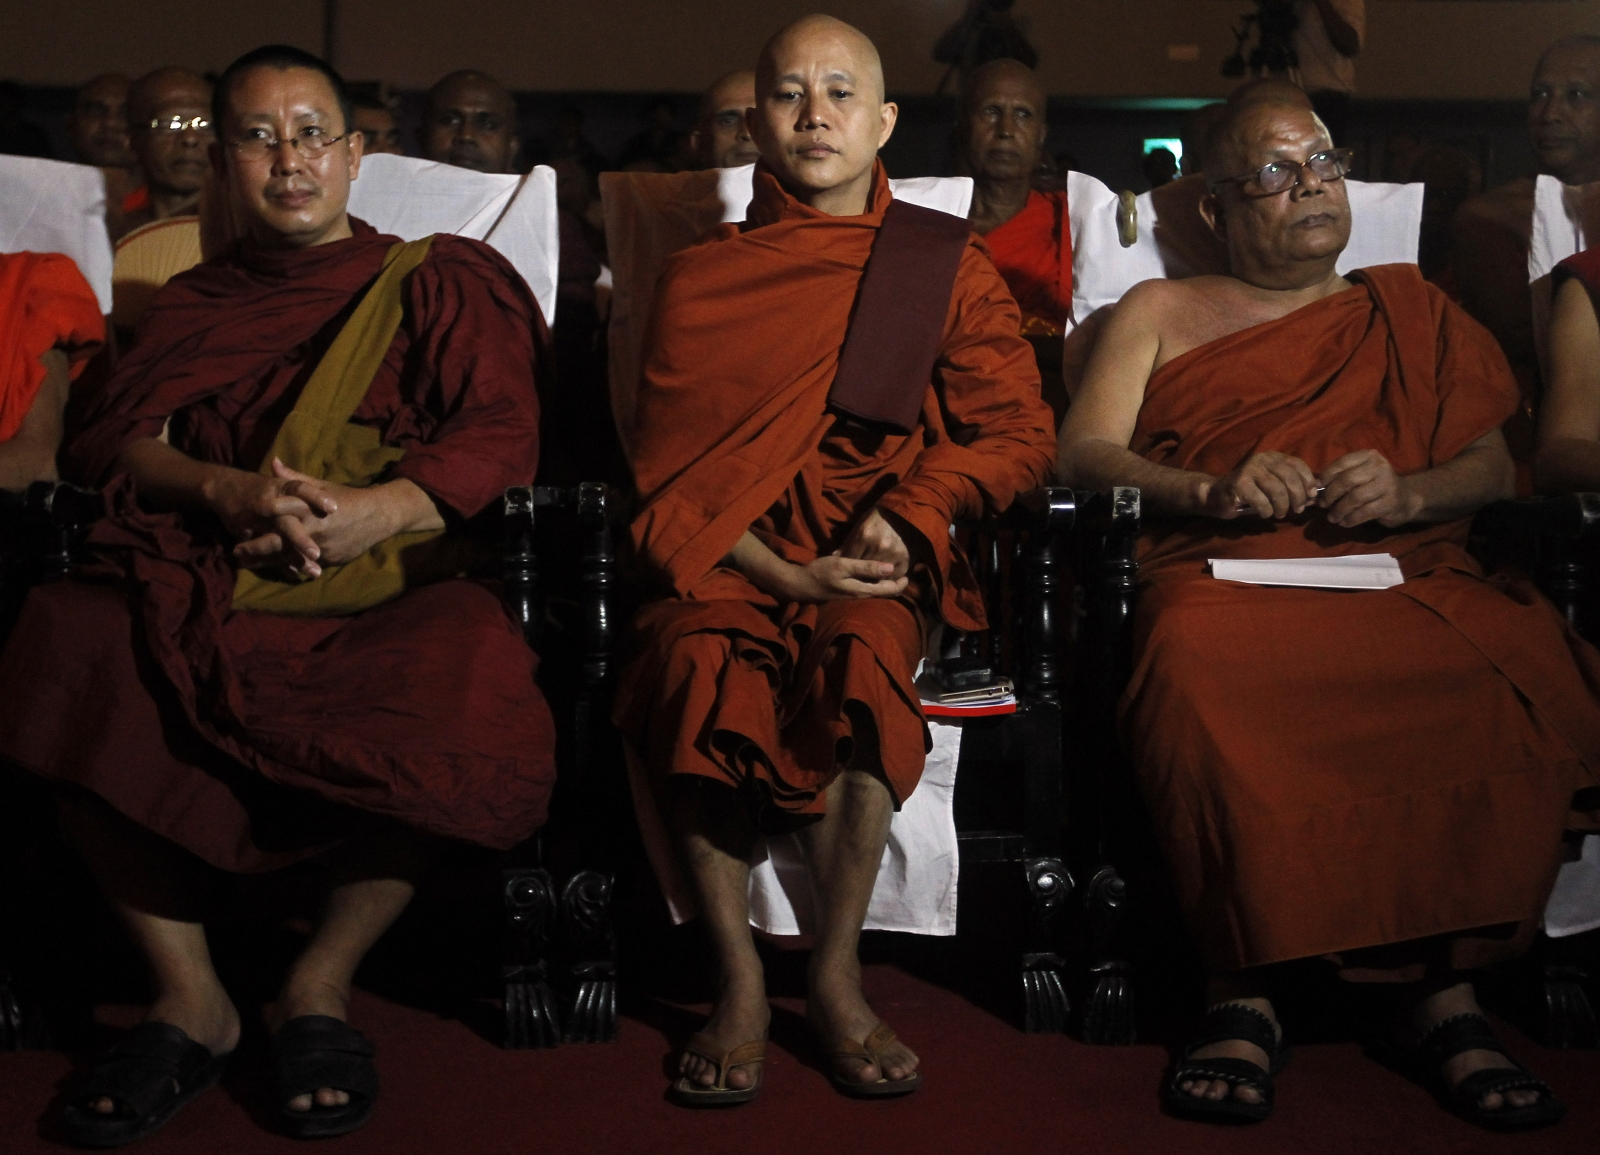 Buddhist monk Ashin Wirathu (C), leader of the 969 movement, looks on as he attends a convention held by the Bodu Bala Sena (Buddhist Power Force, BBS) in Colombo